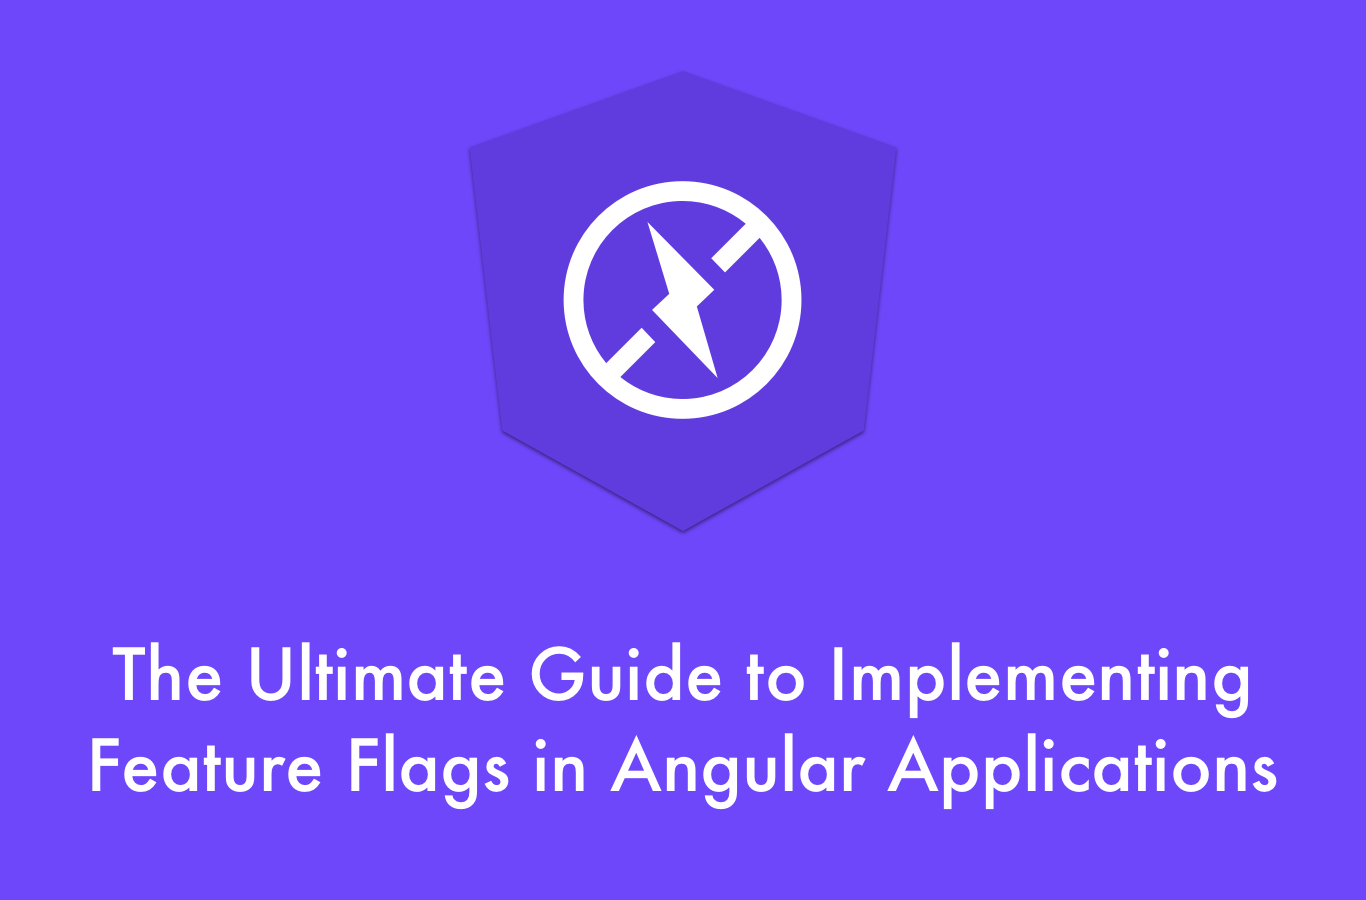 The Ultimate Guide to Implementing Feature Flags in Angular